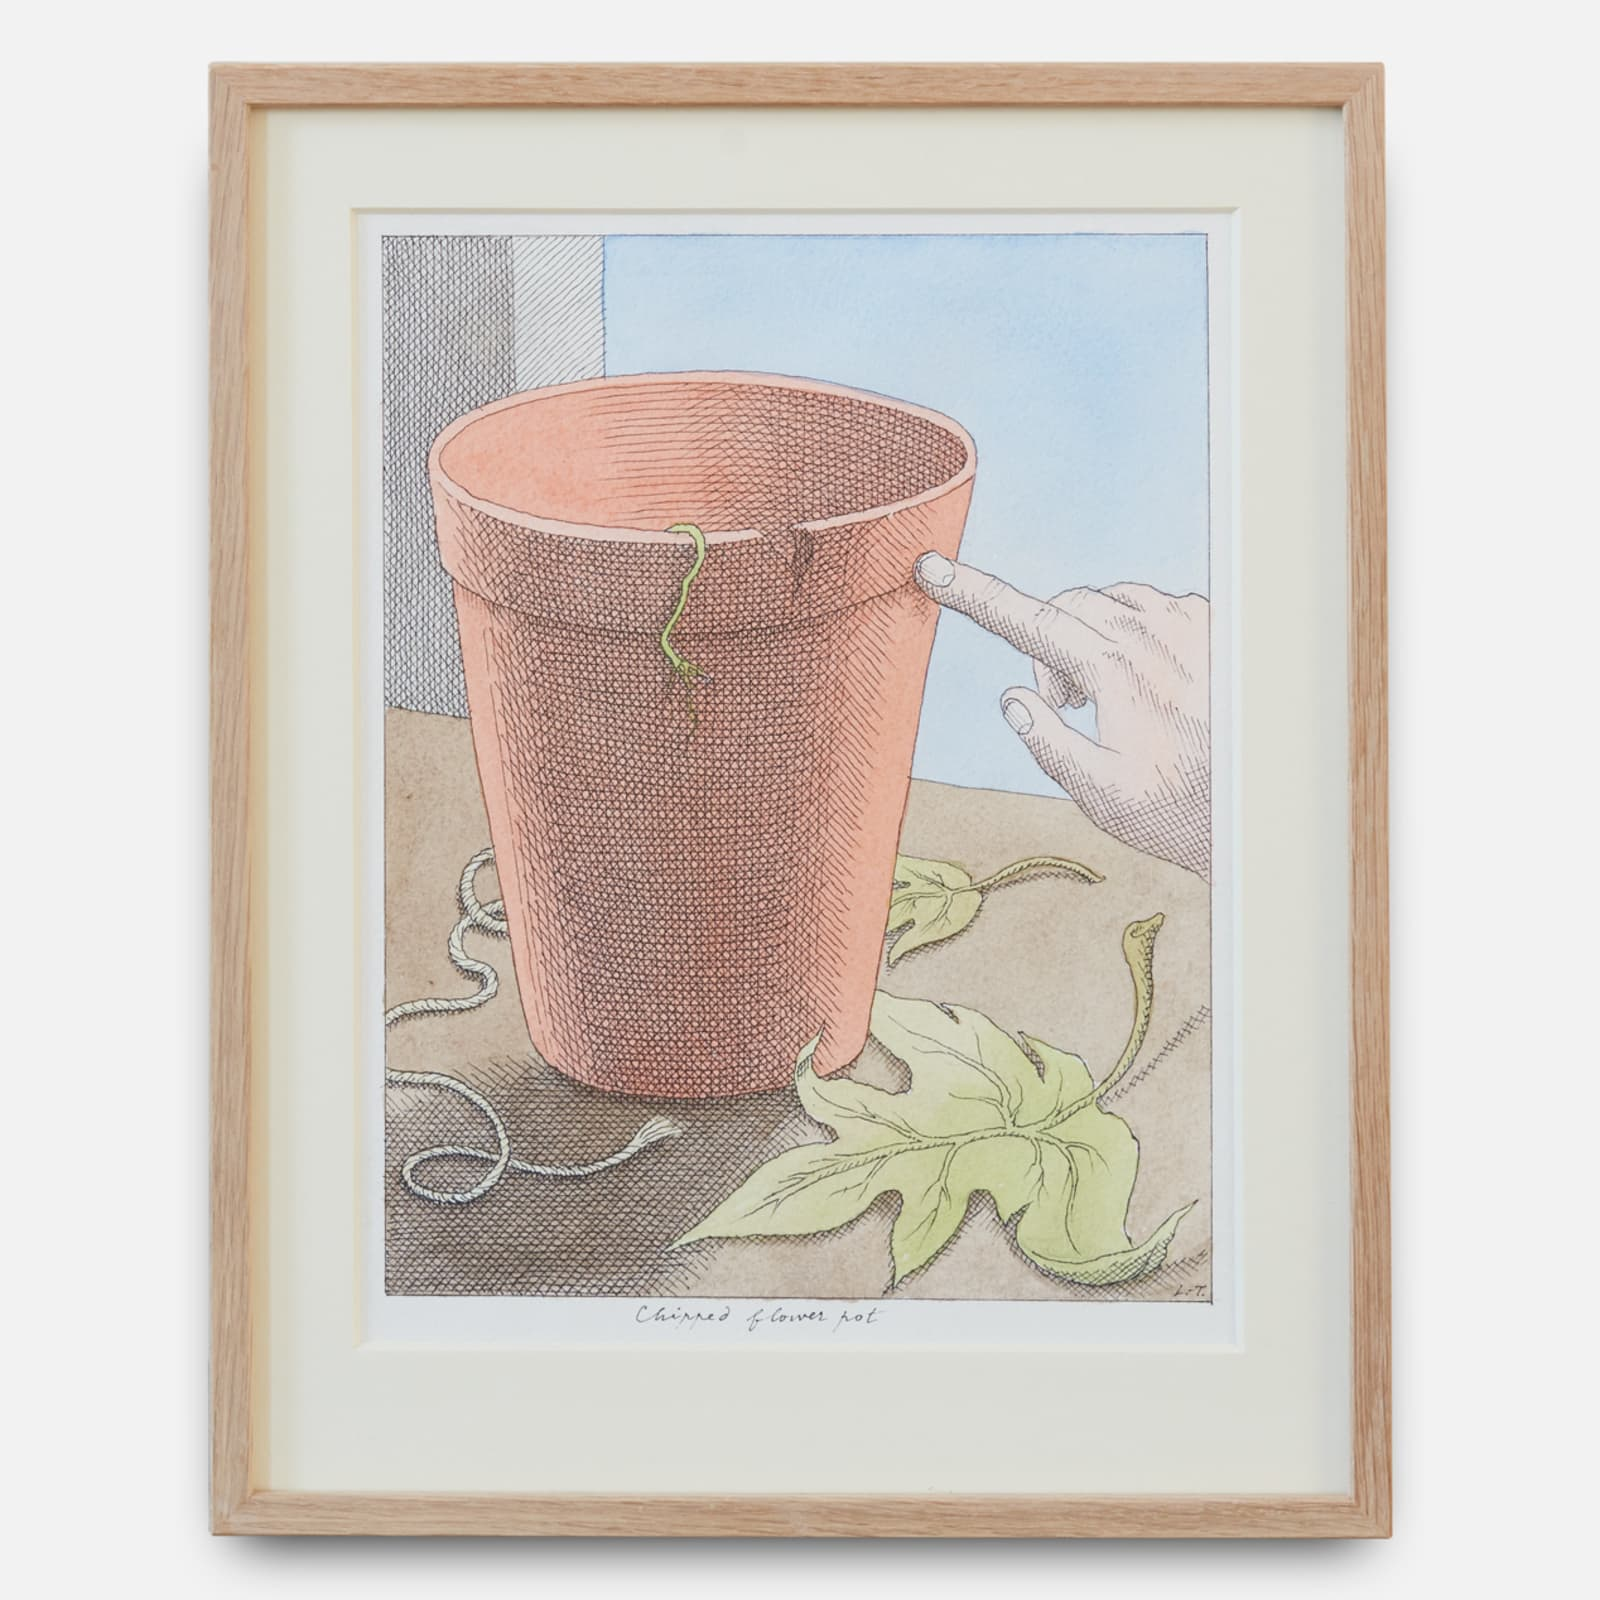 Pierre Le-Tan  Chipped Flower Pot, 2019  Ink and watercolour on paper  Framed: 36 x 28 cm